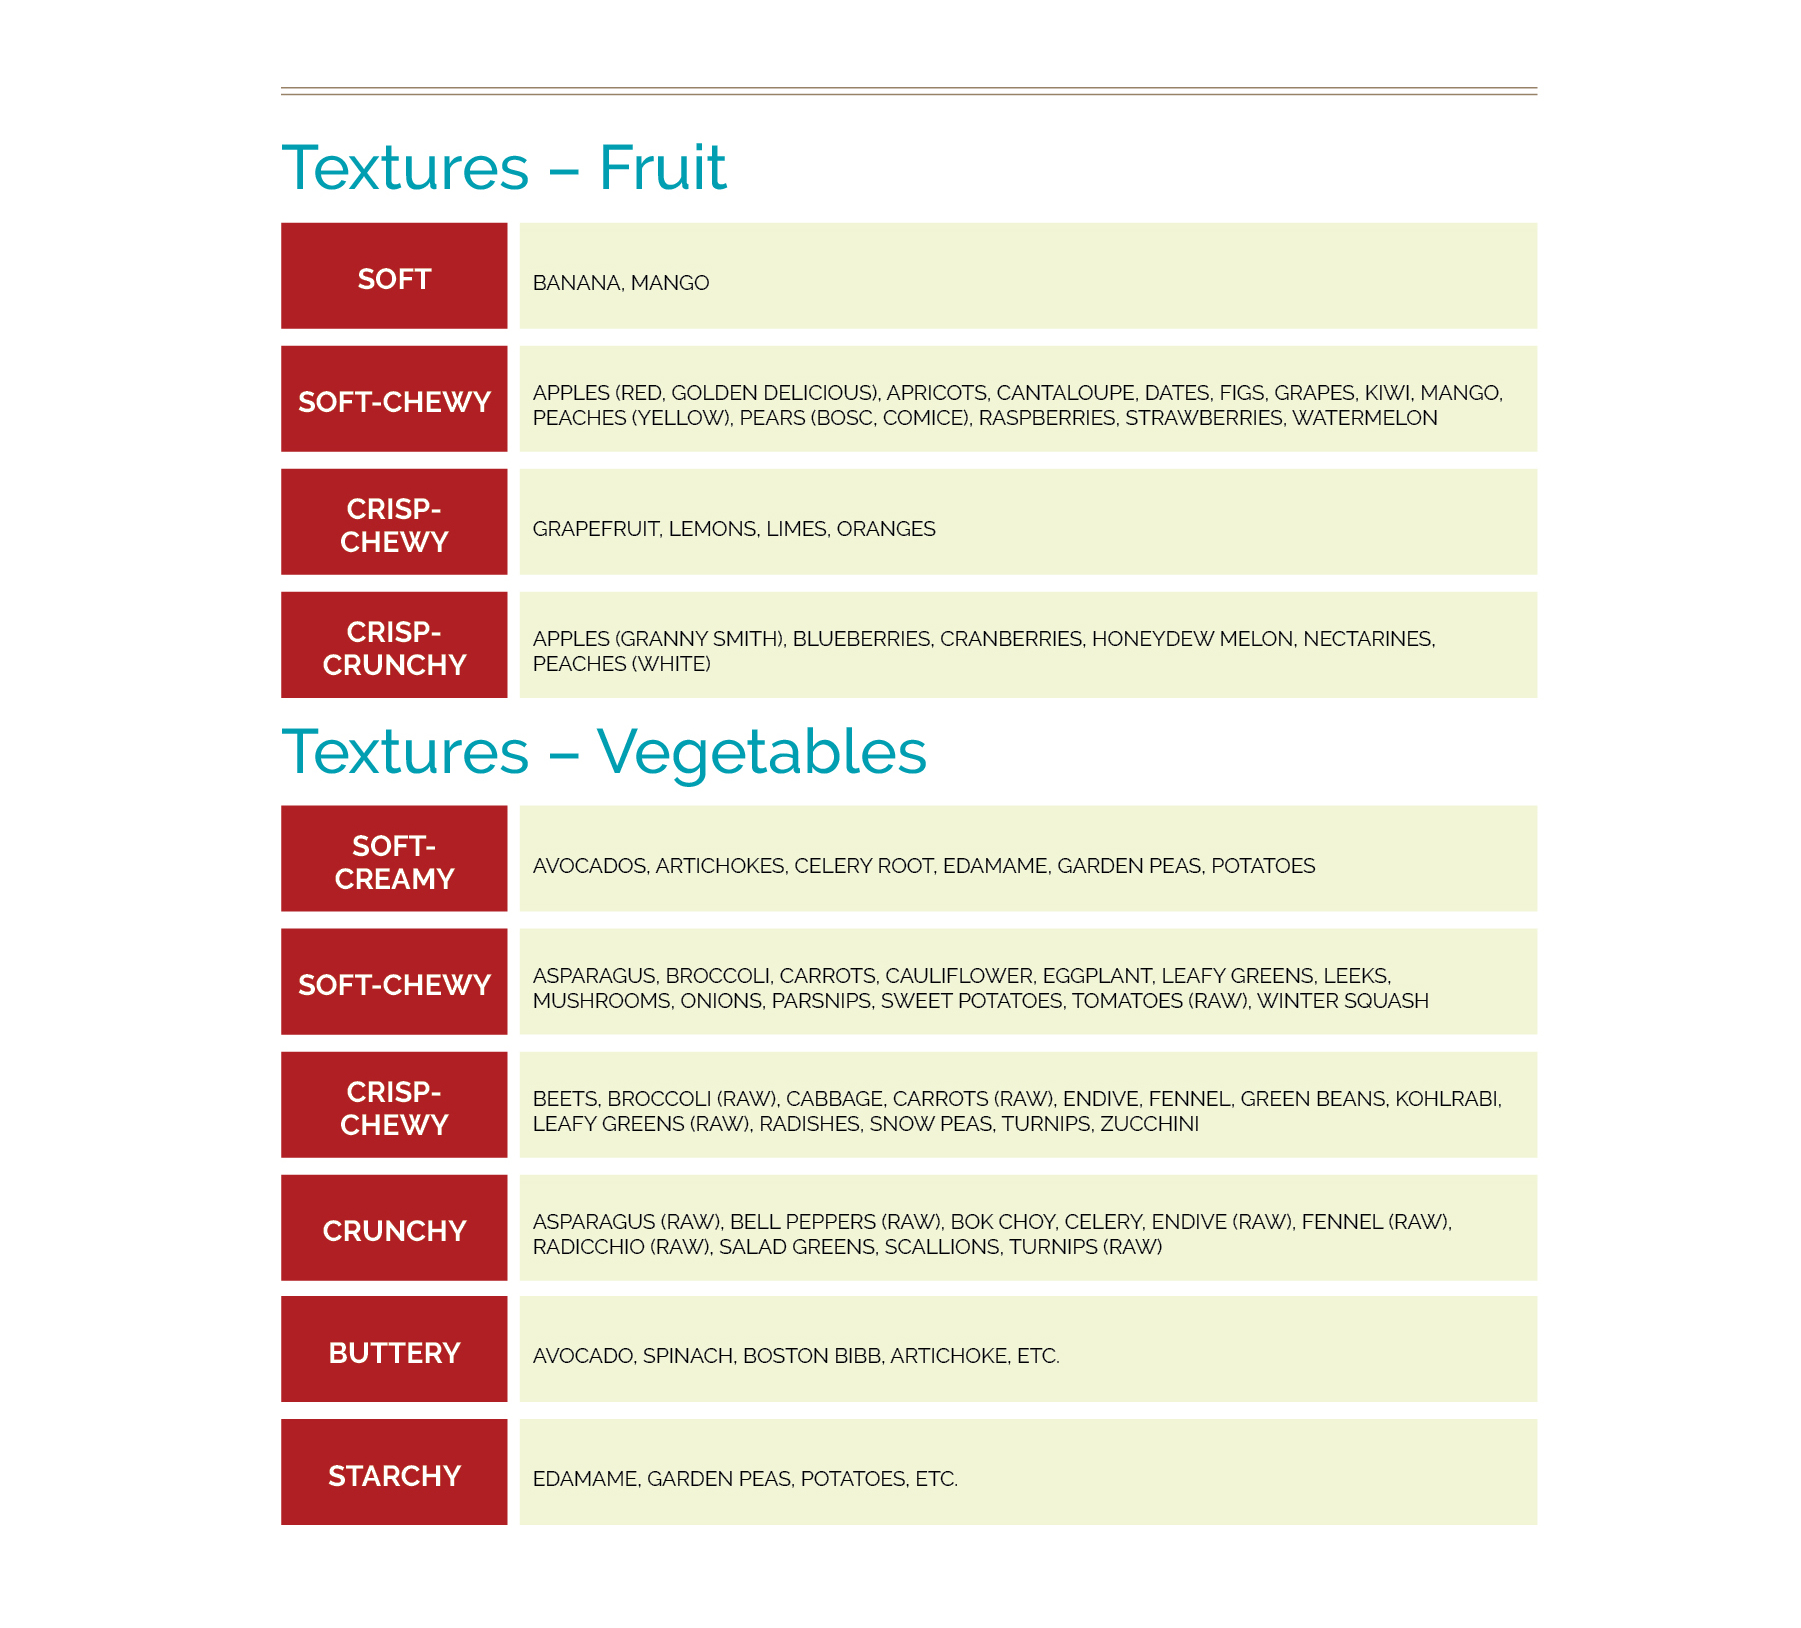 textures of fruit and vegetables.jpg